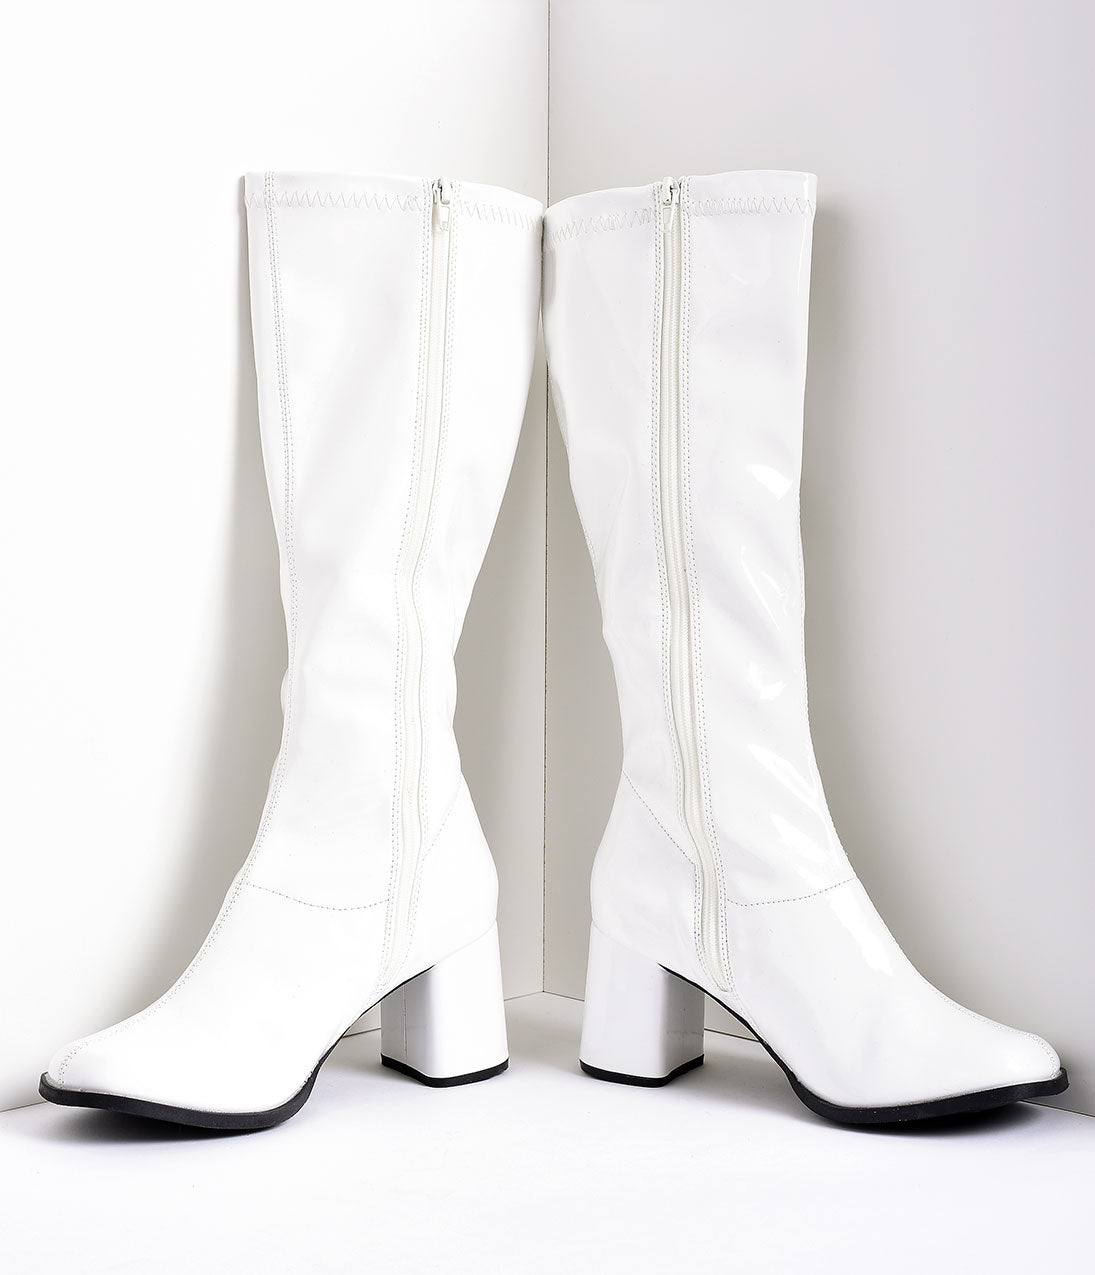 70s Disco Fashion: Disco Clothes, Outfits for Girls White Patent Knee High Go Go Boots $68.00 AT vintagedancer.com